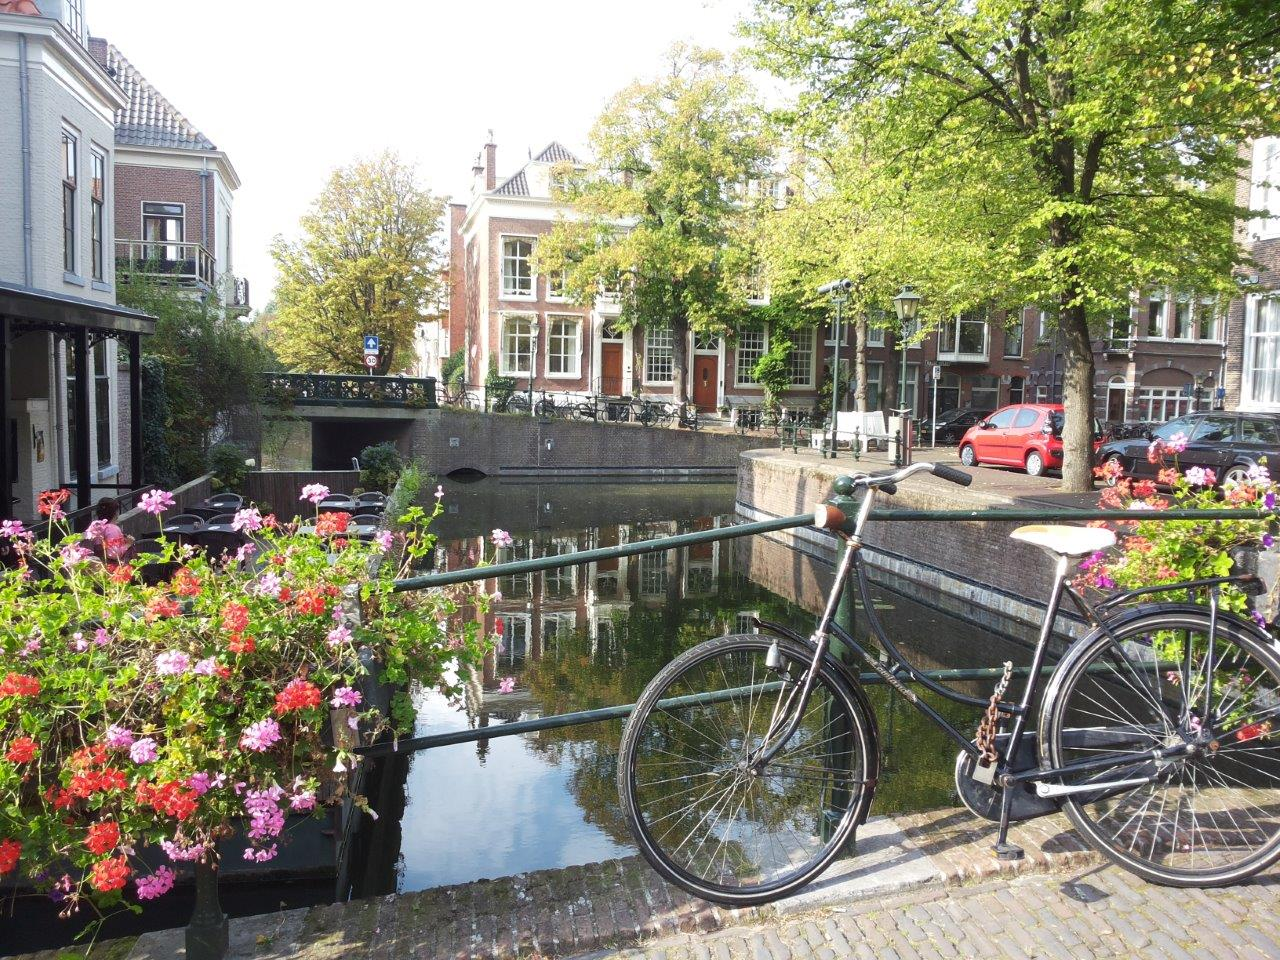 Canal in The Hague - Is The Hague worth visiting?